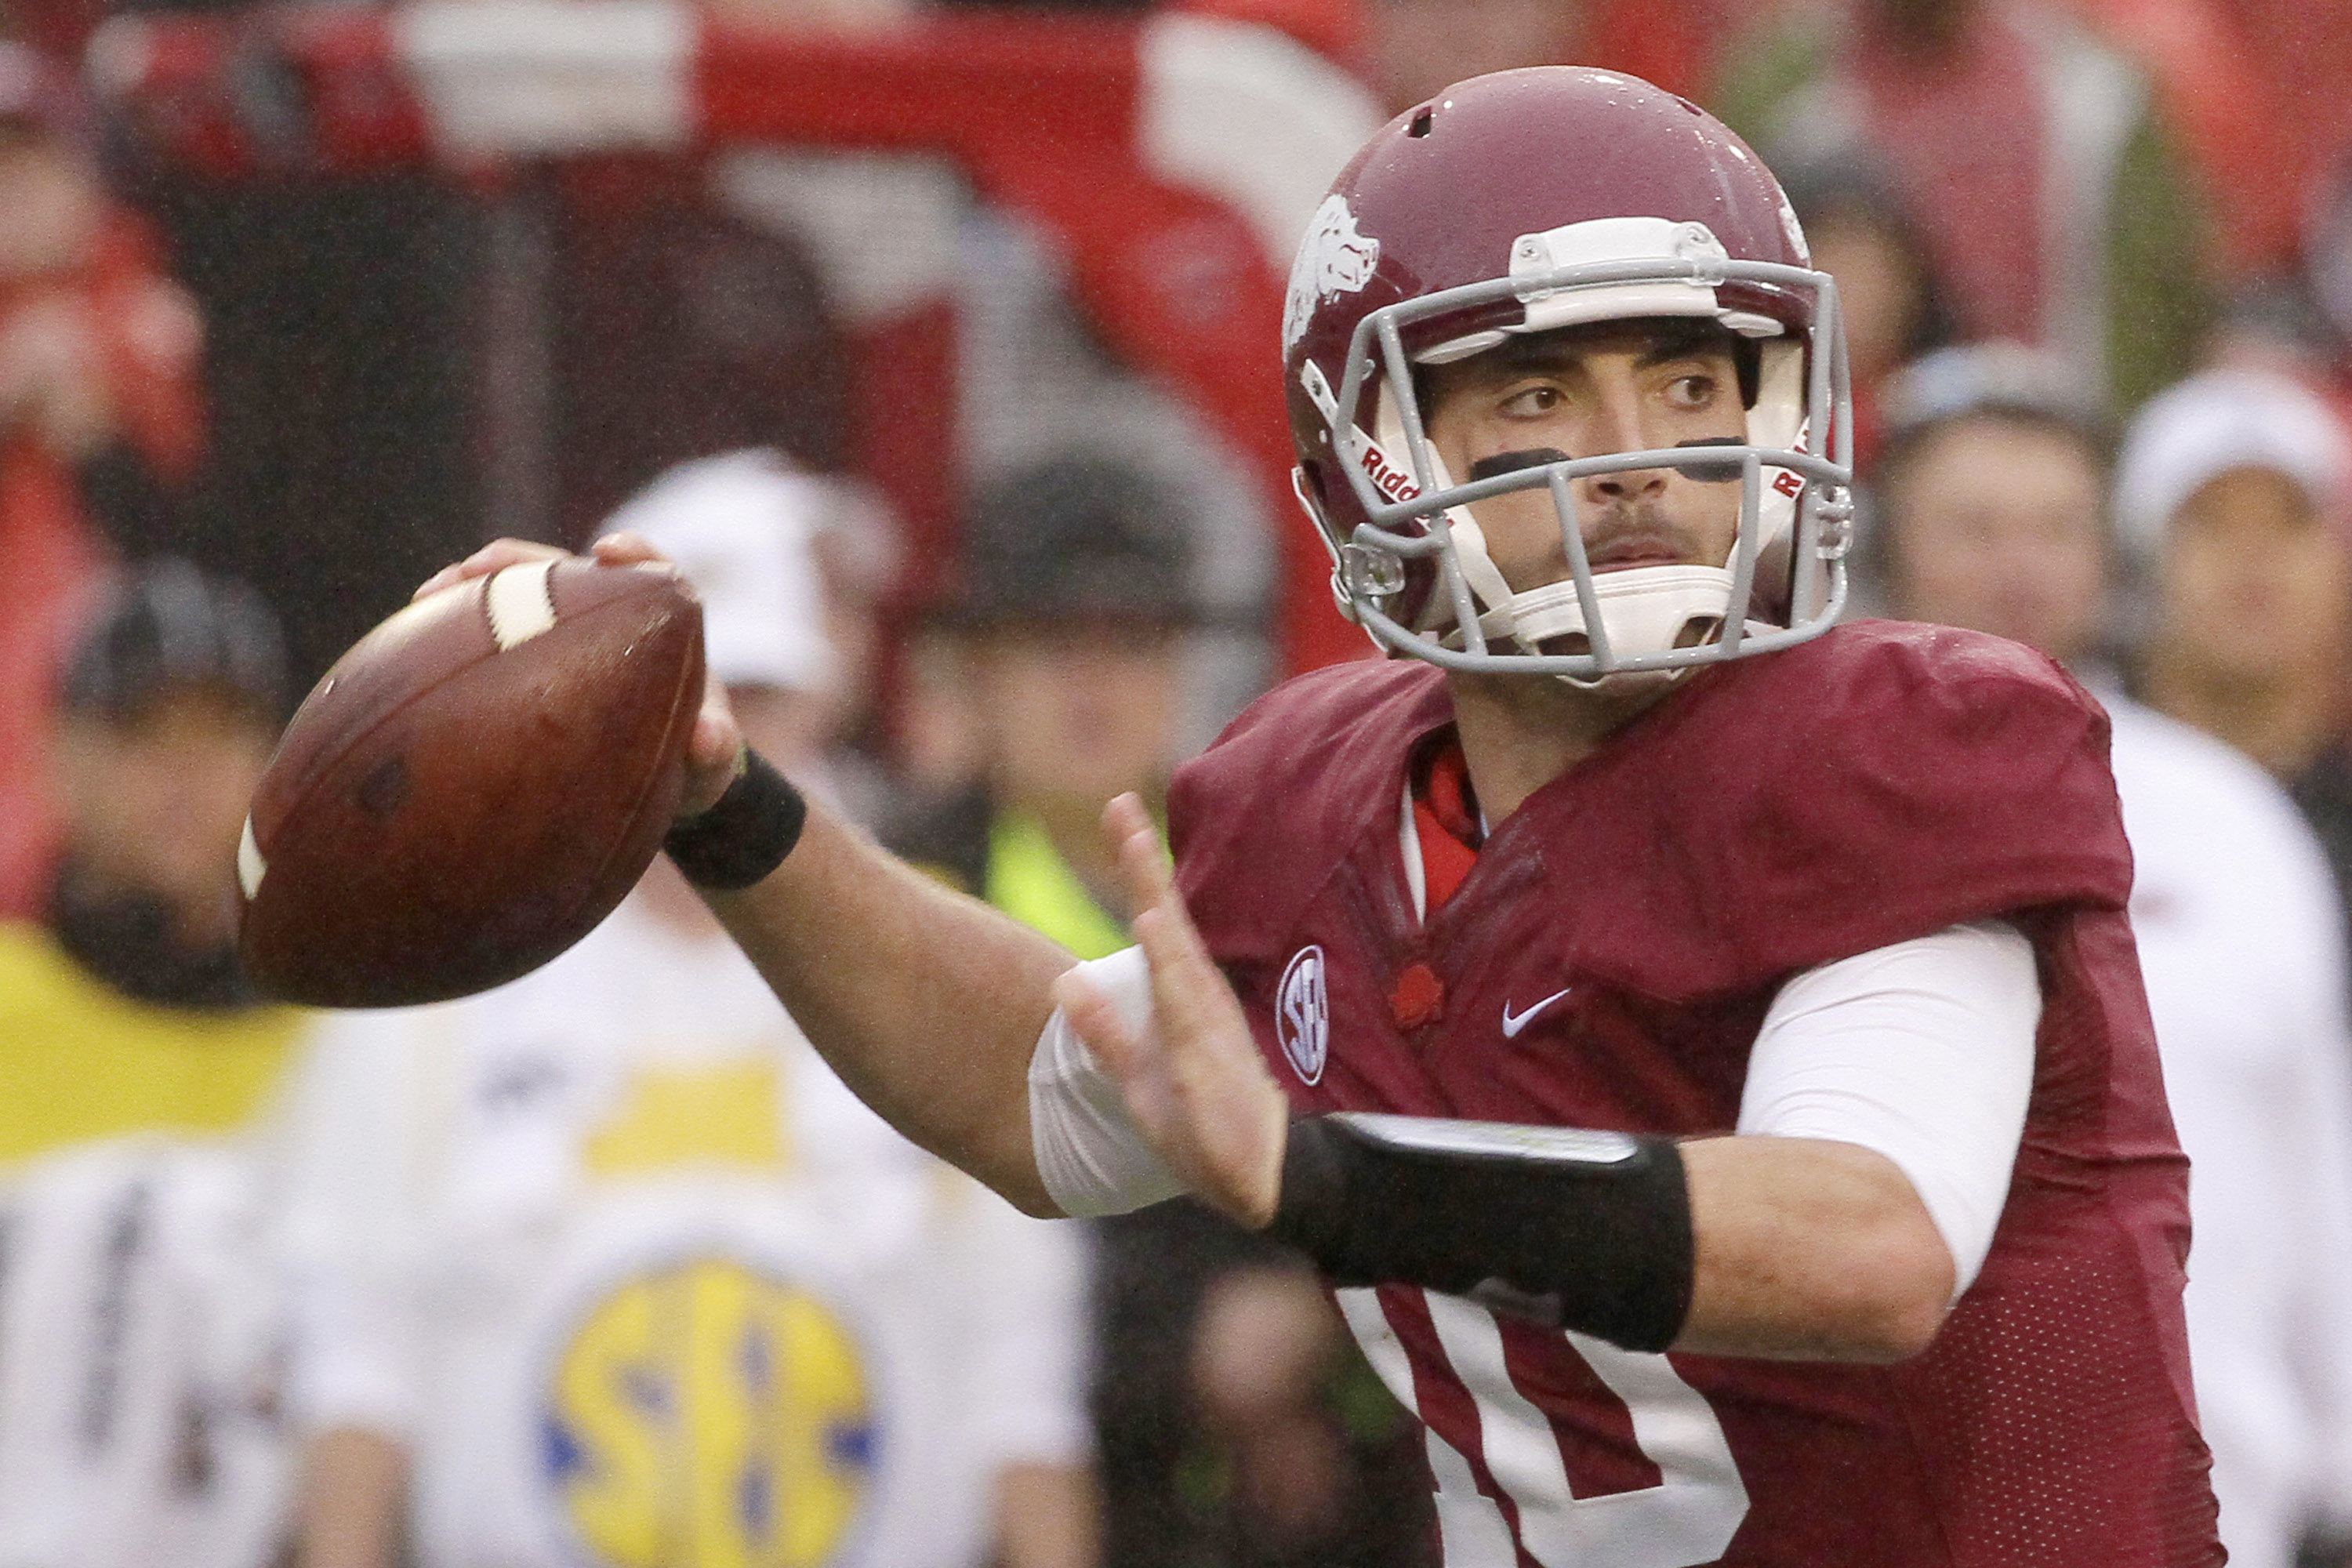 FILE - In this Oct. 11, 2014, file phot, Arkansas quarterback Brandon Allen passes in the first half of an NCAA college football game against Alabama in Fayetteville, Ark. The resurgent Razorbacks have enjoyed their relatively calm spring this year, which